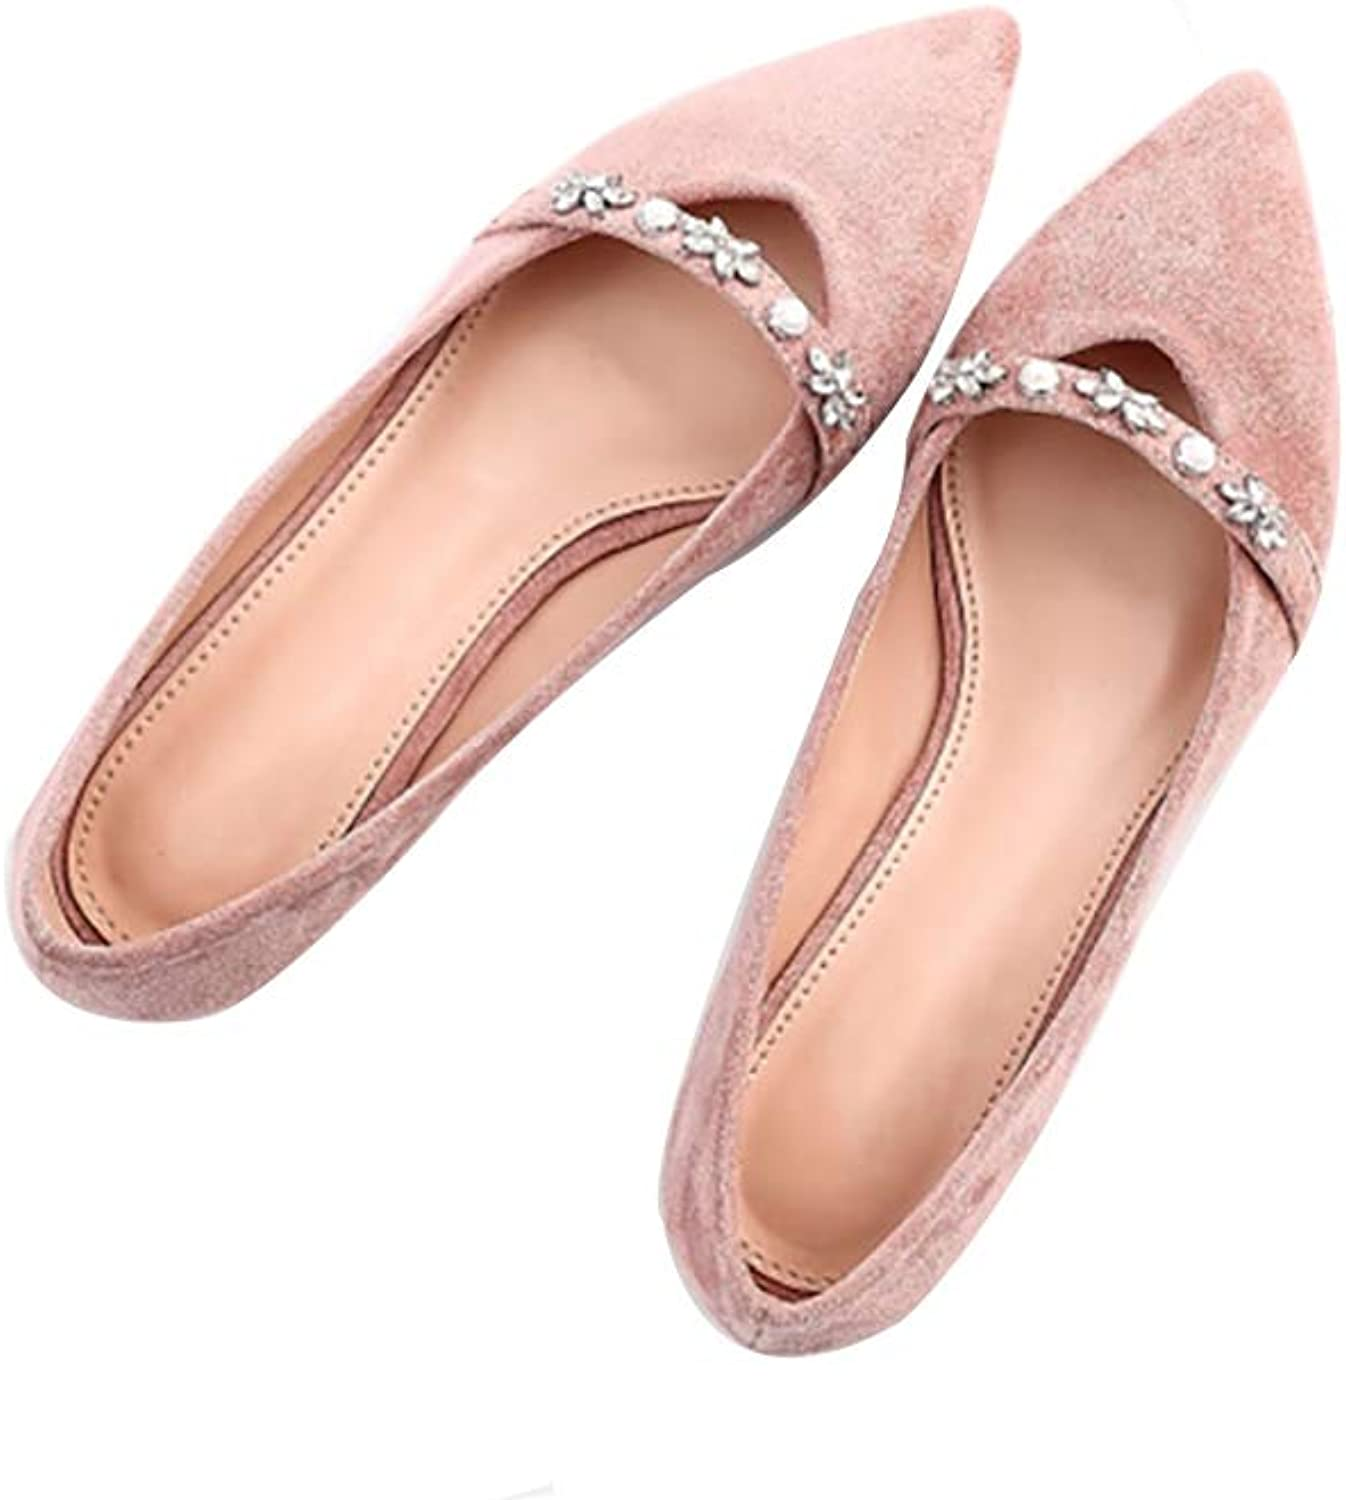 WENJUN Flat shoes Women's shoes Single shoes Female Flat with Wild Diamond Shallow Pointed Low-Heel Comfortable shoes (color   Bean Paste Powder, Size   39)